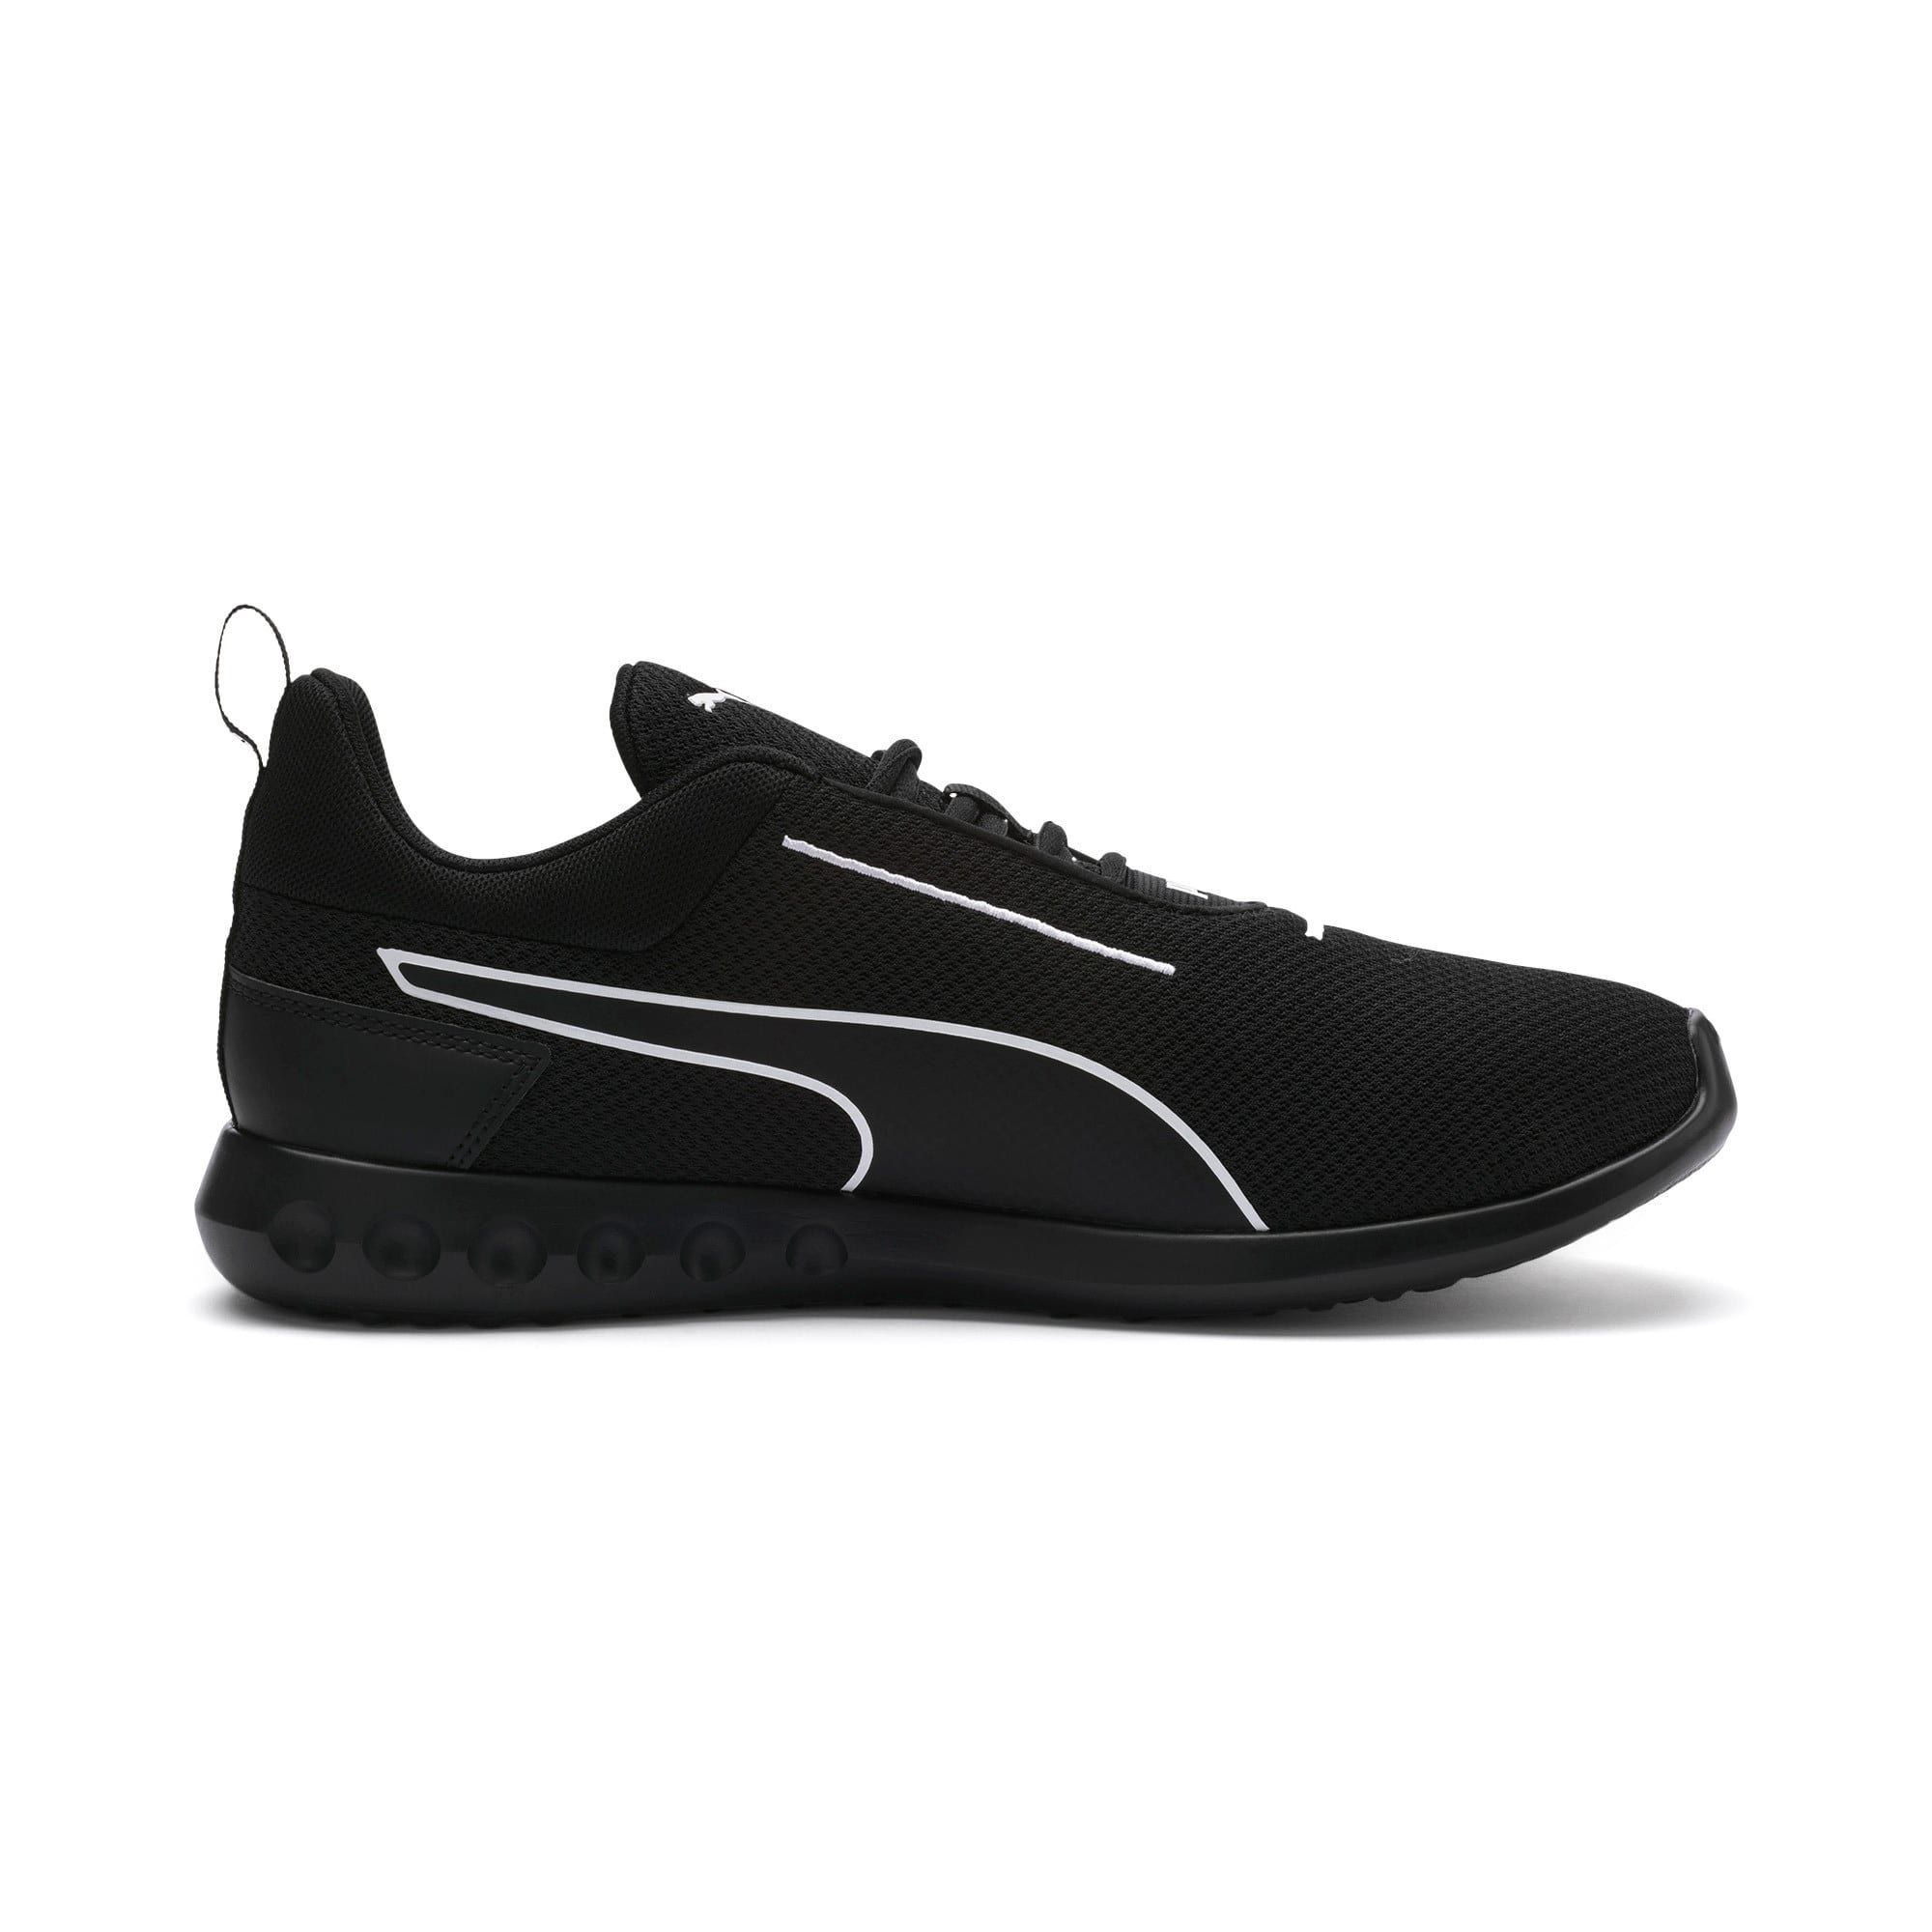 exquisite style pretty cool great deals PUMA Carson 2 Concave Men's Trainers in Black/White size 10 ...